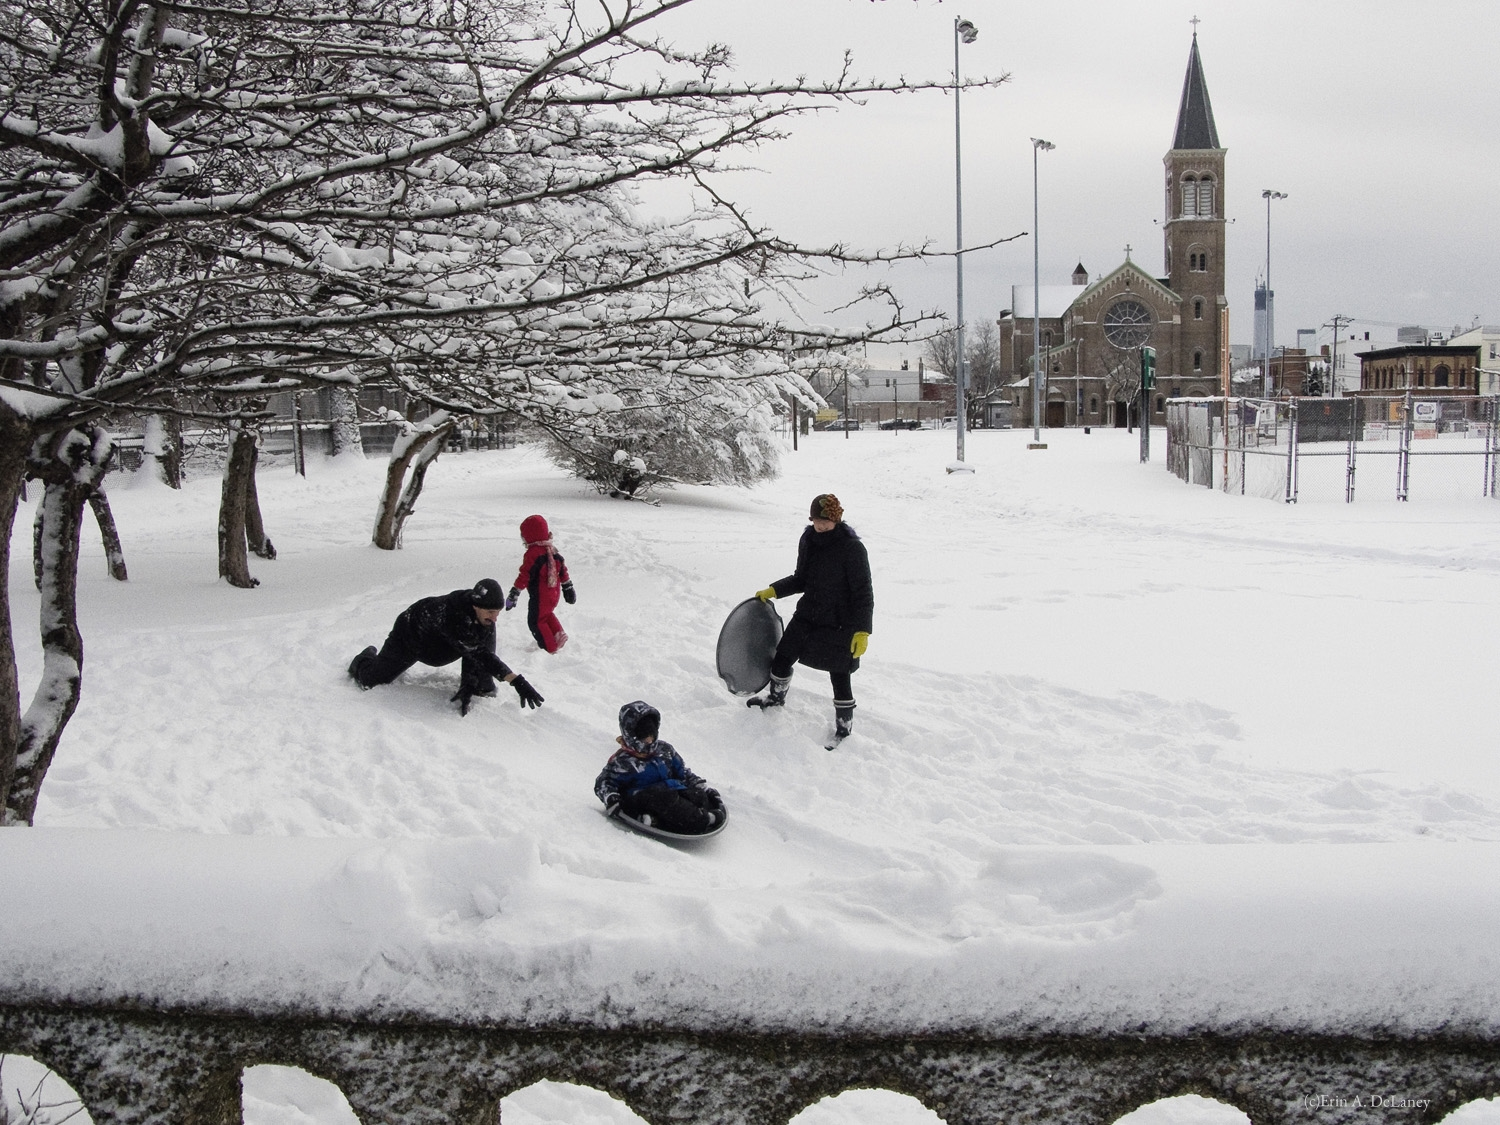 Sledding in Pershing Field Park, Jersey City, 2013